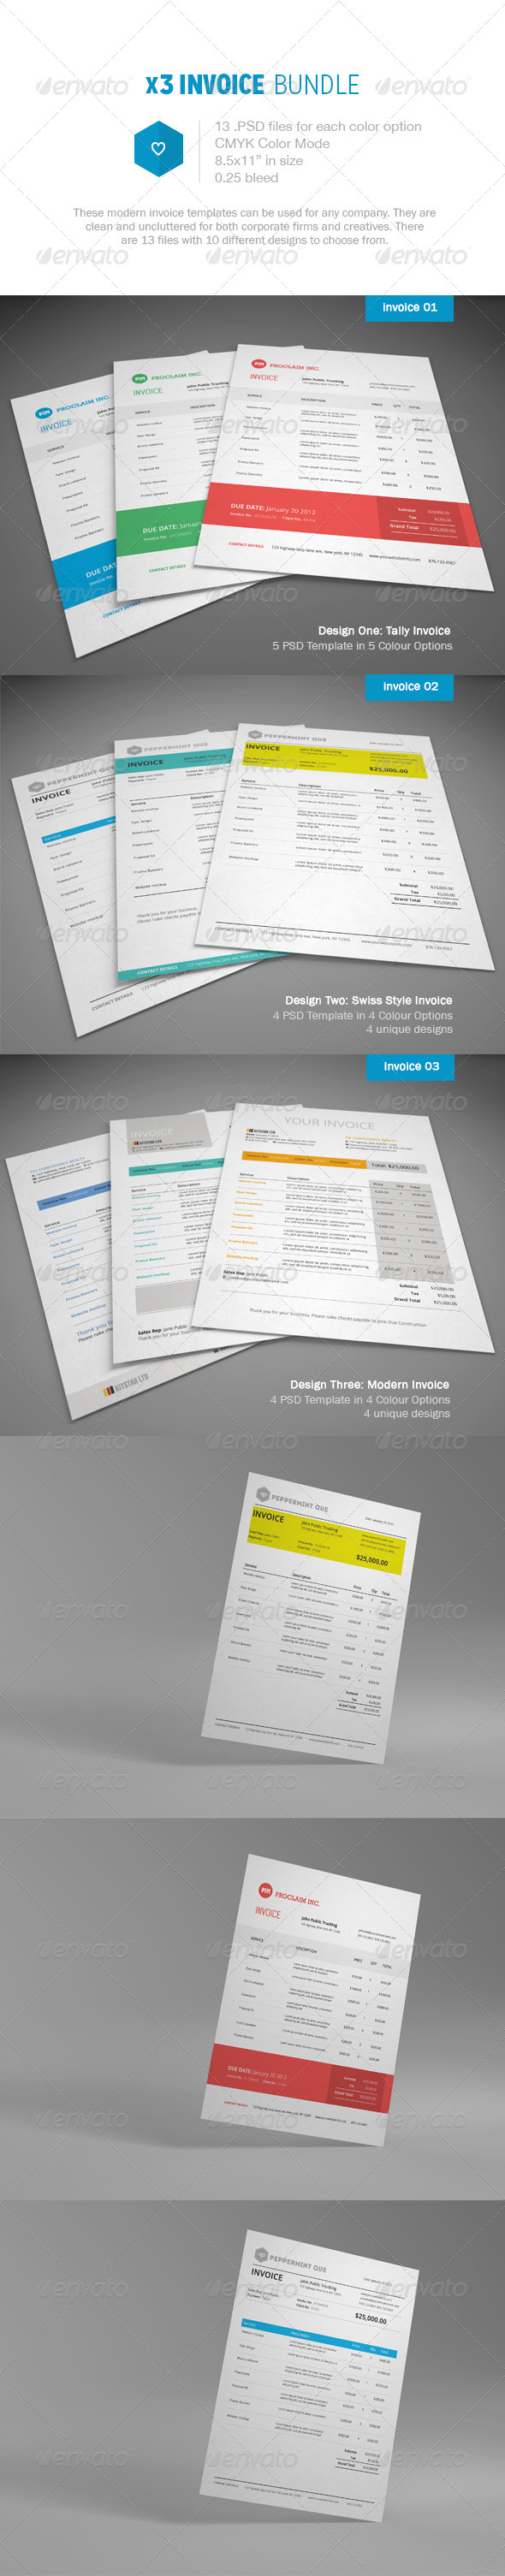 Invoice Bundle  - Proposals & Invoices Stationery